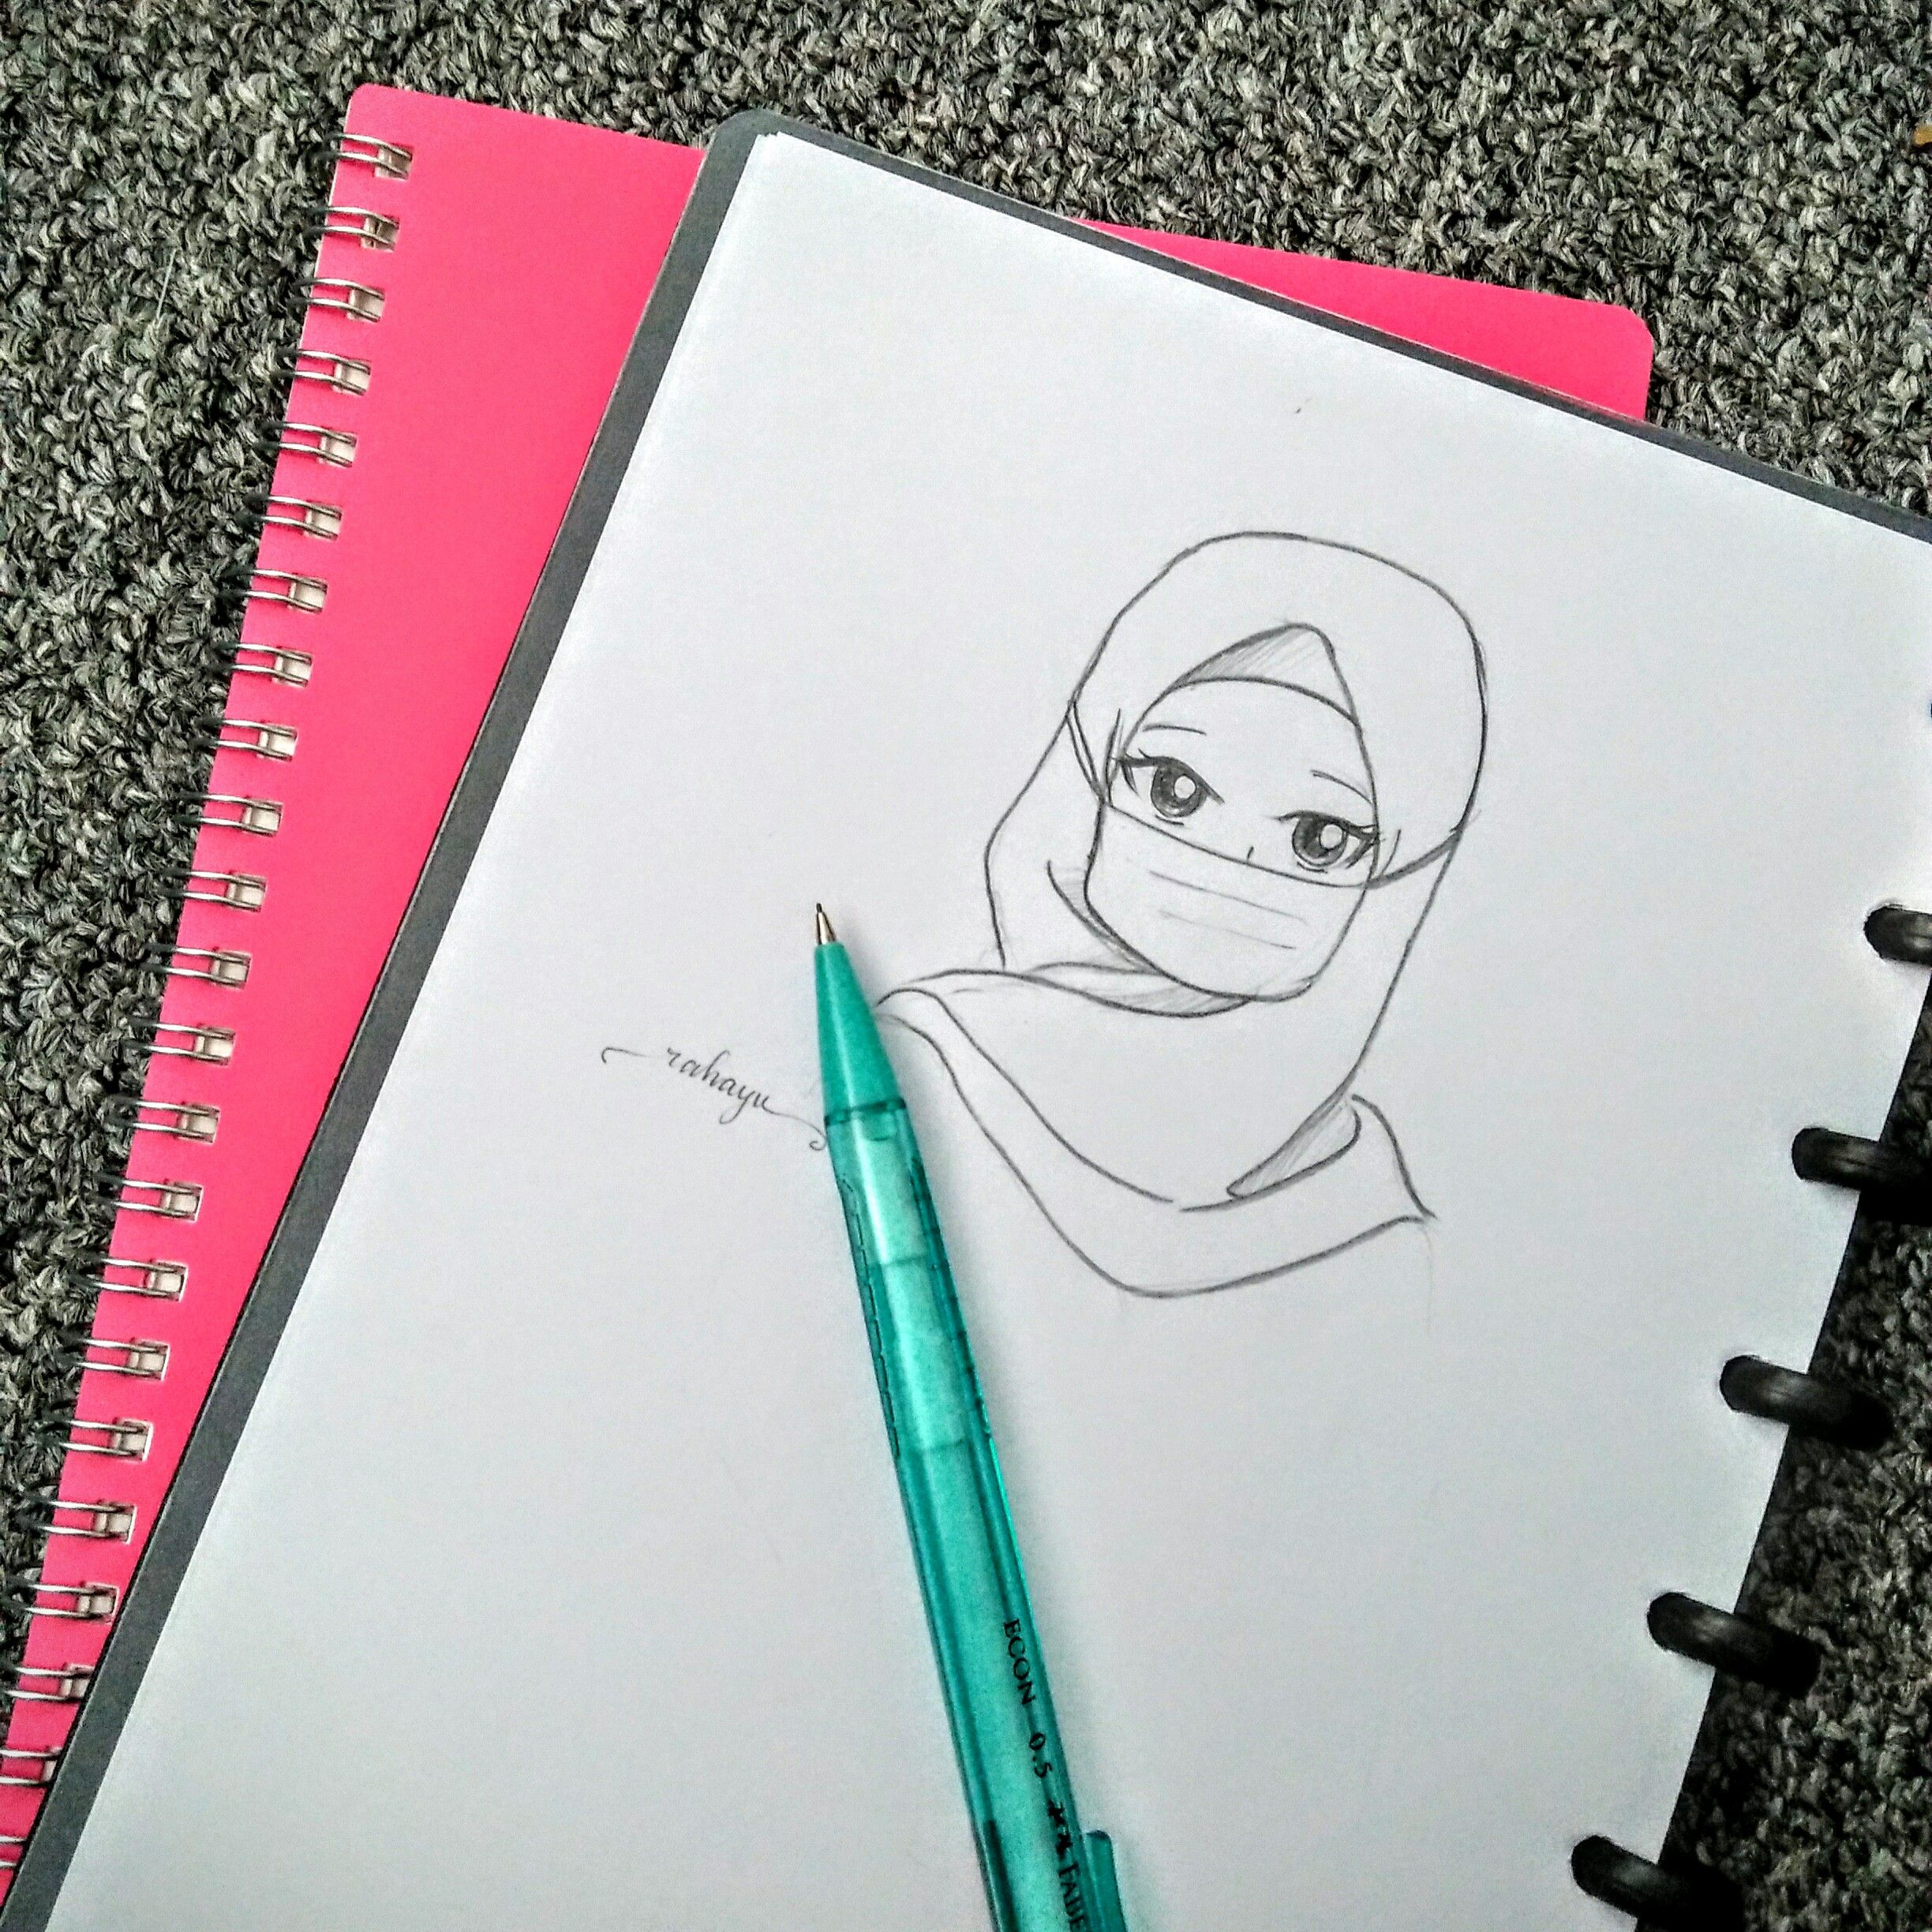 Manga muslimah hijab handdrawing cartoon pencil sketch